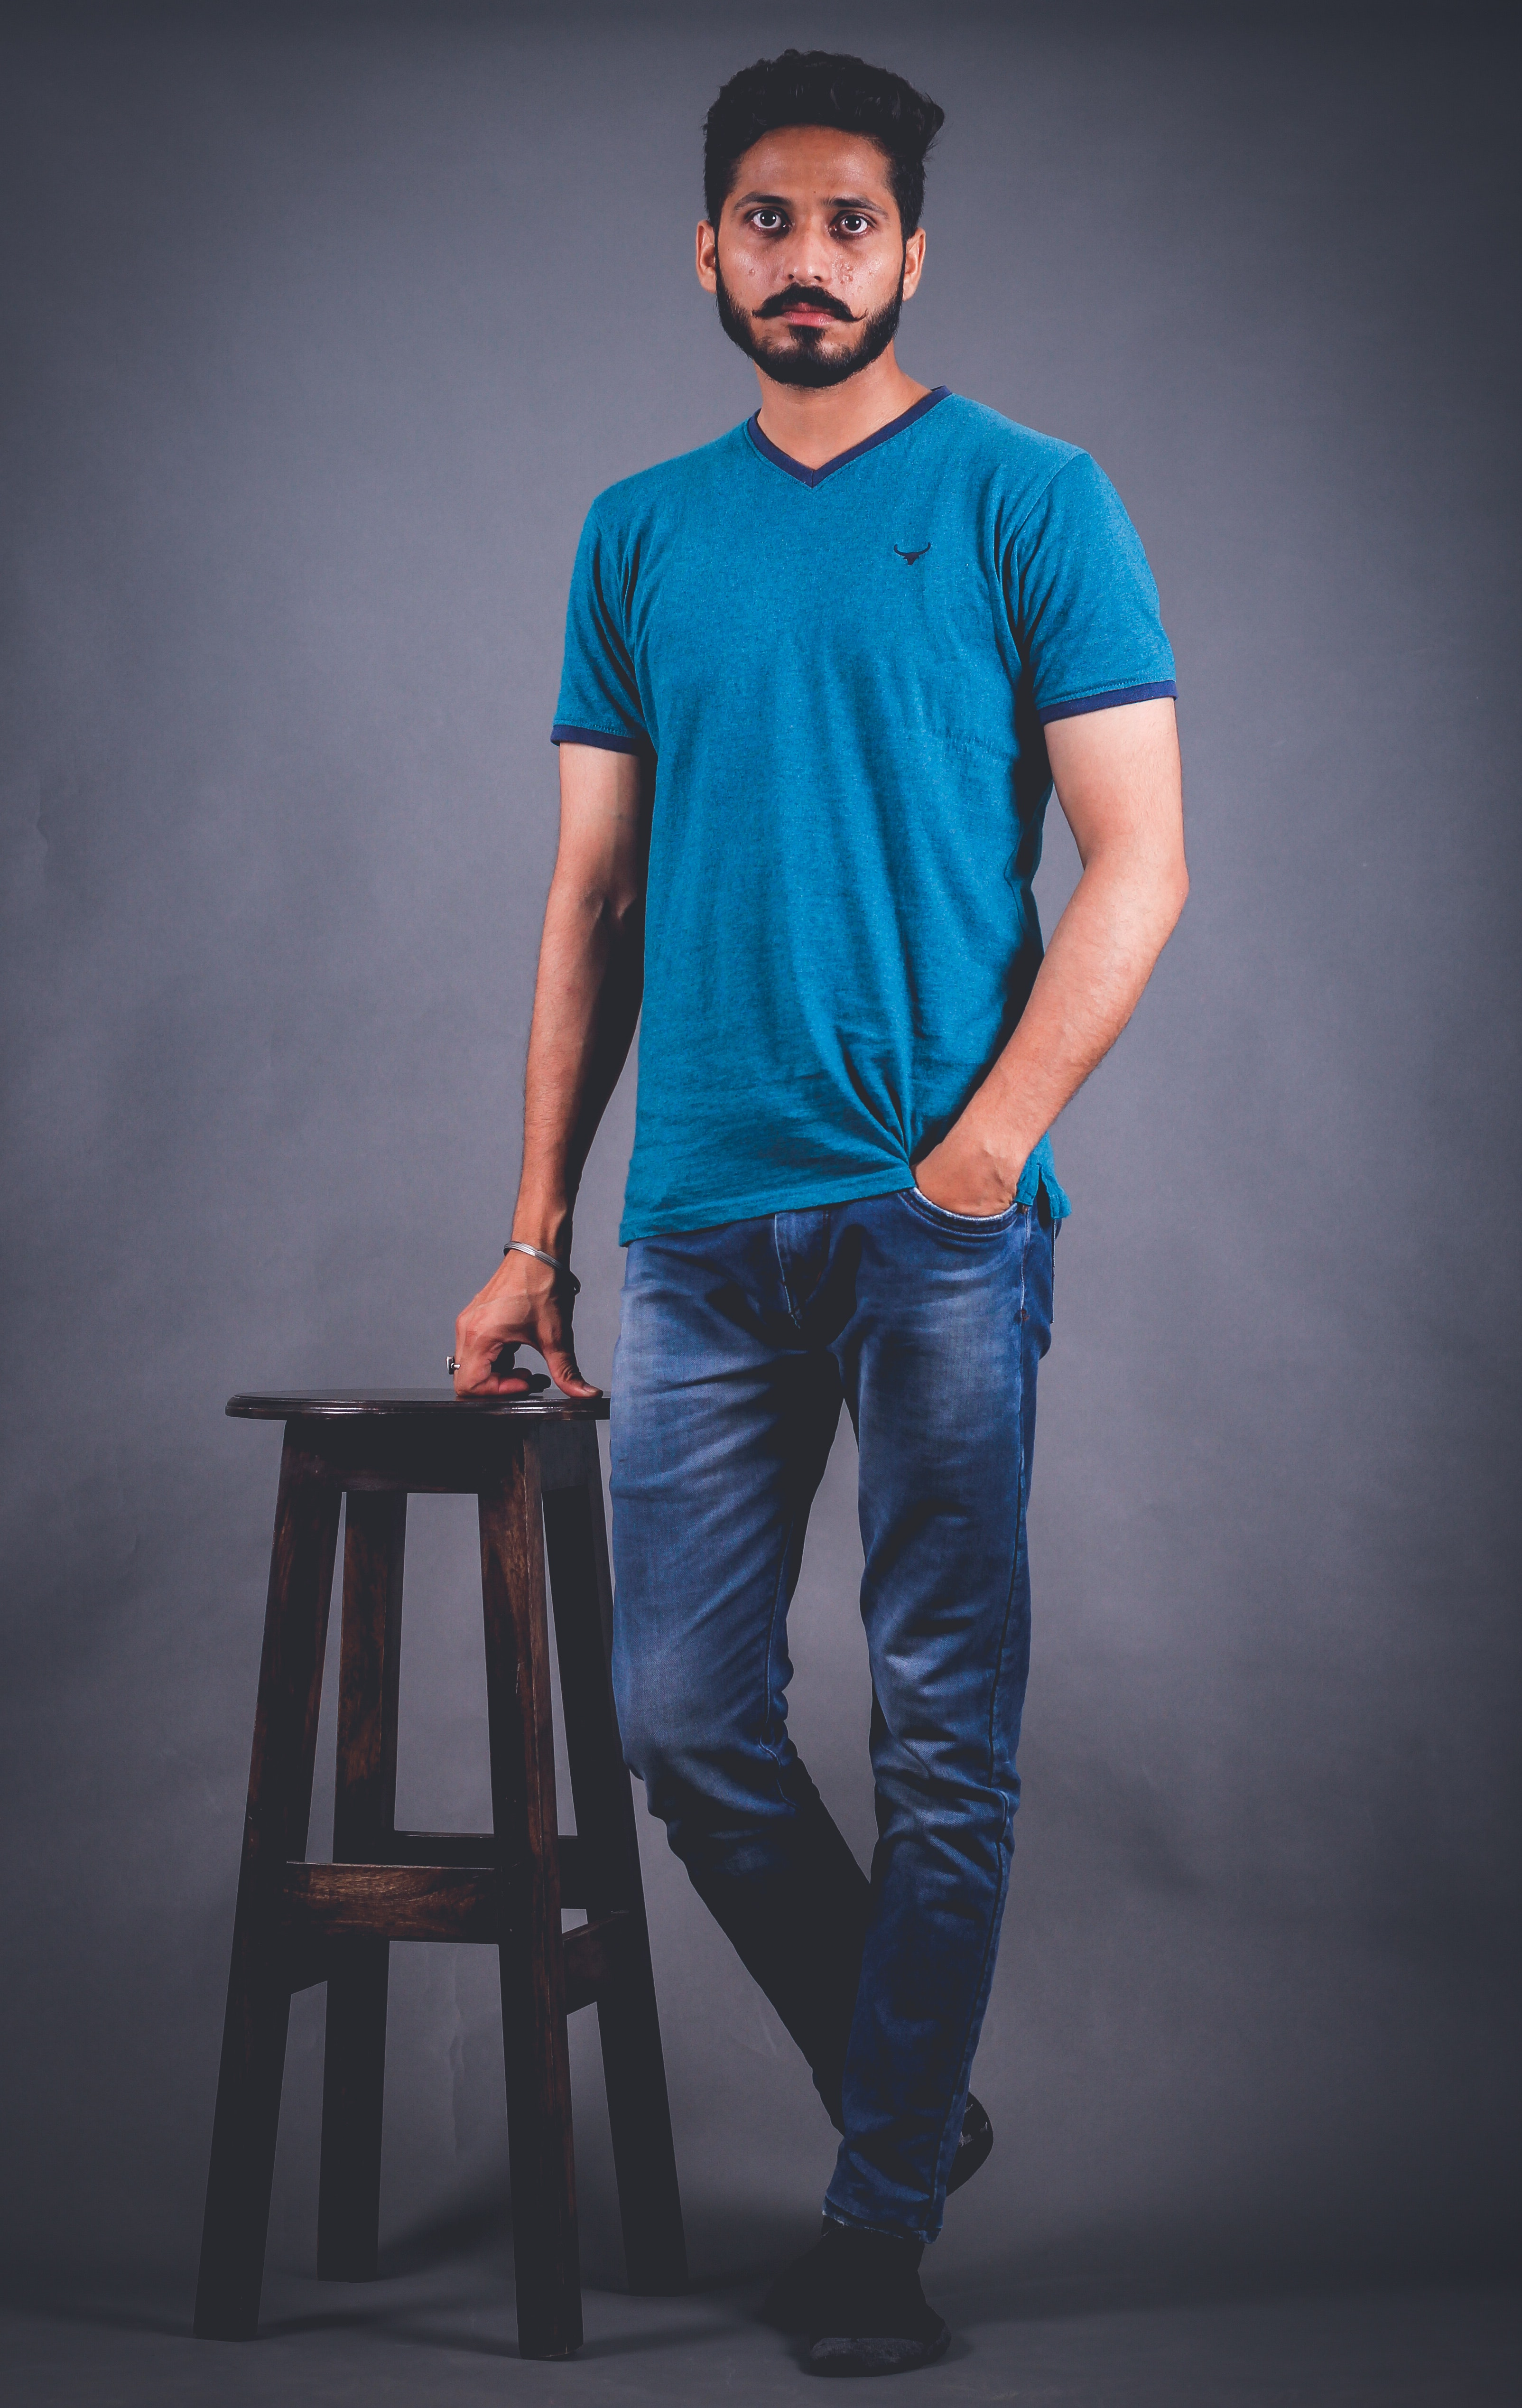 Terrific Photo Of Man Standing Beside Wooden Stool Free Stock Photo Ocoug Best Dining Table And Chair Ideas Images Ocougorg